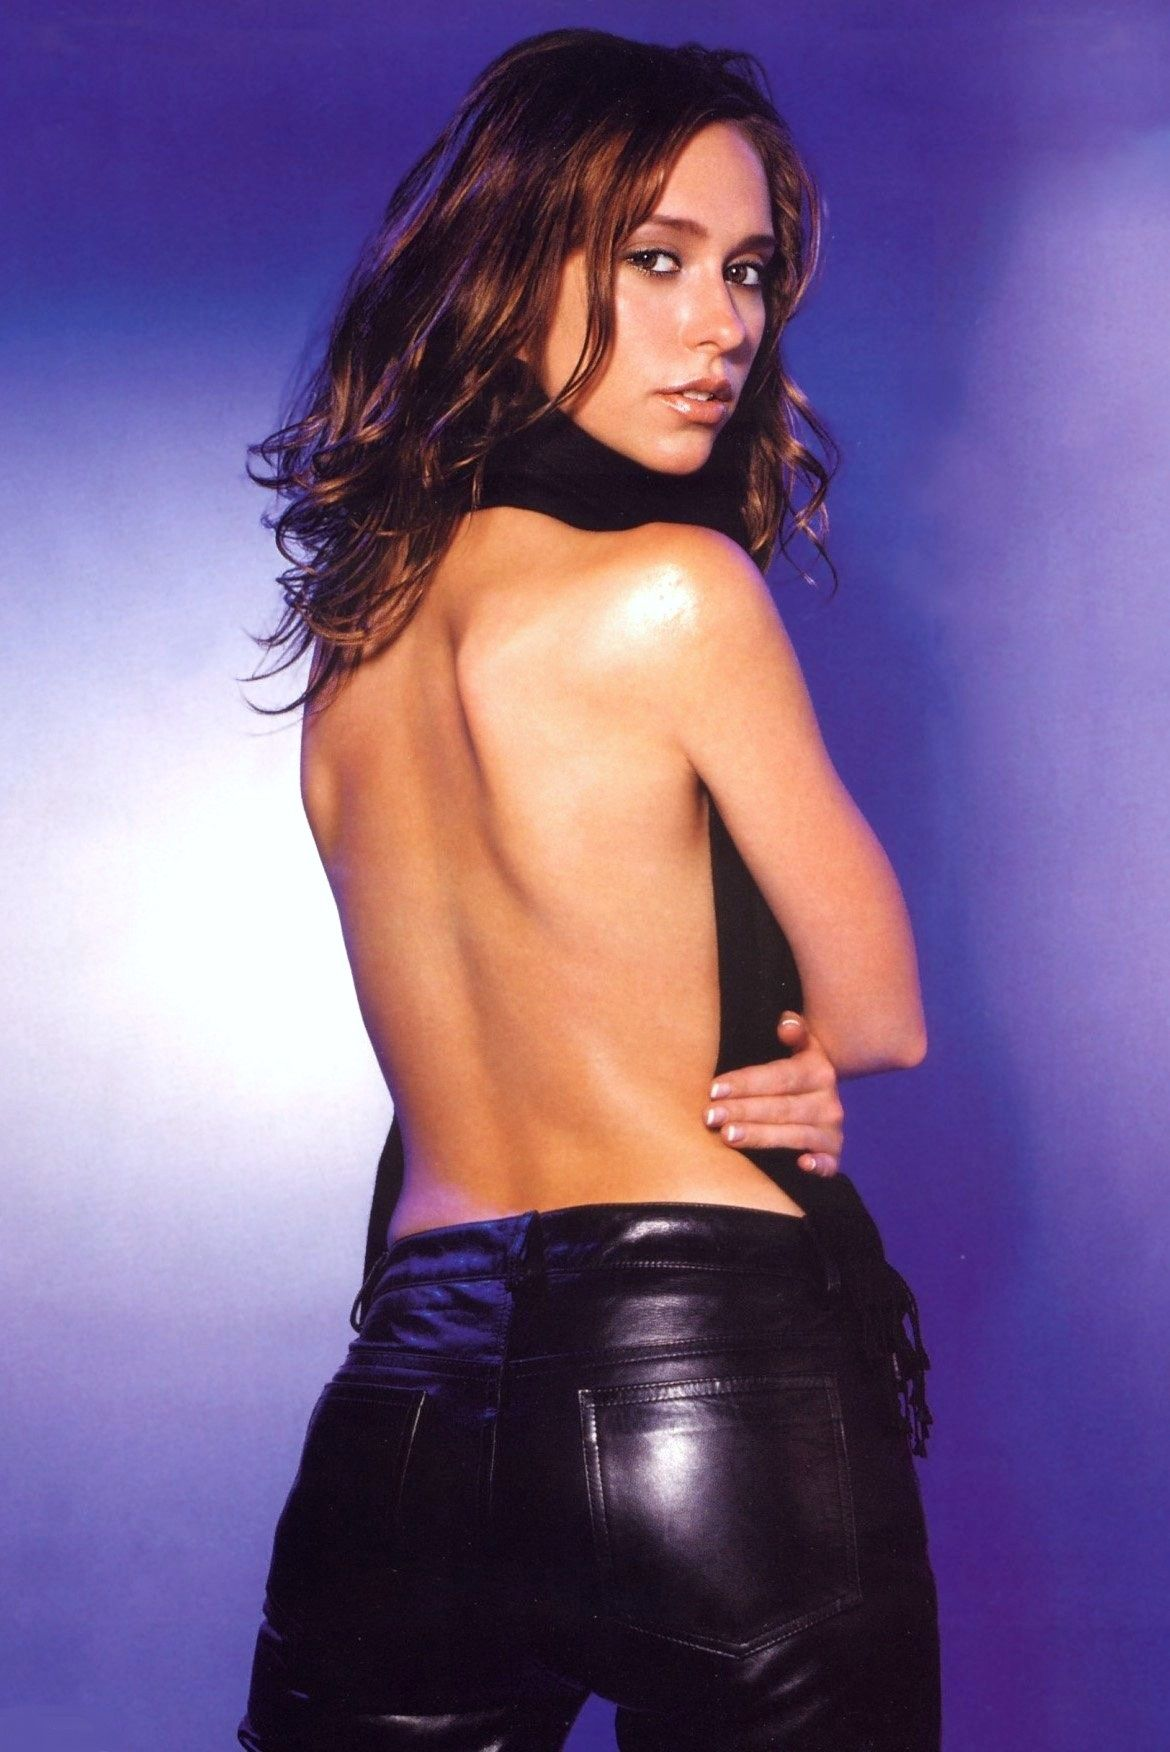 This Nineties Heartthrob Rose To Prominence As Sarah Reeves In The Original Party Of Five Series Jennifer Love Hewitt Jennifer Love Jennifer Love Hewitt Pics